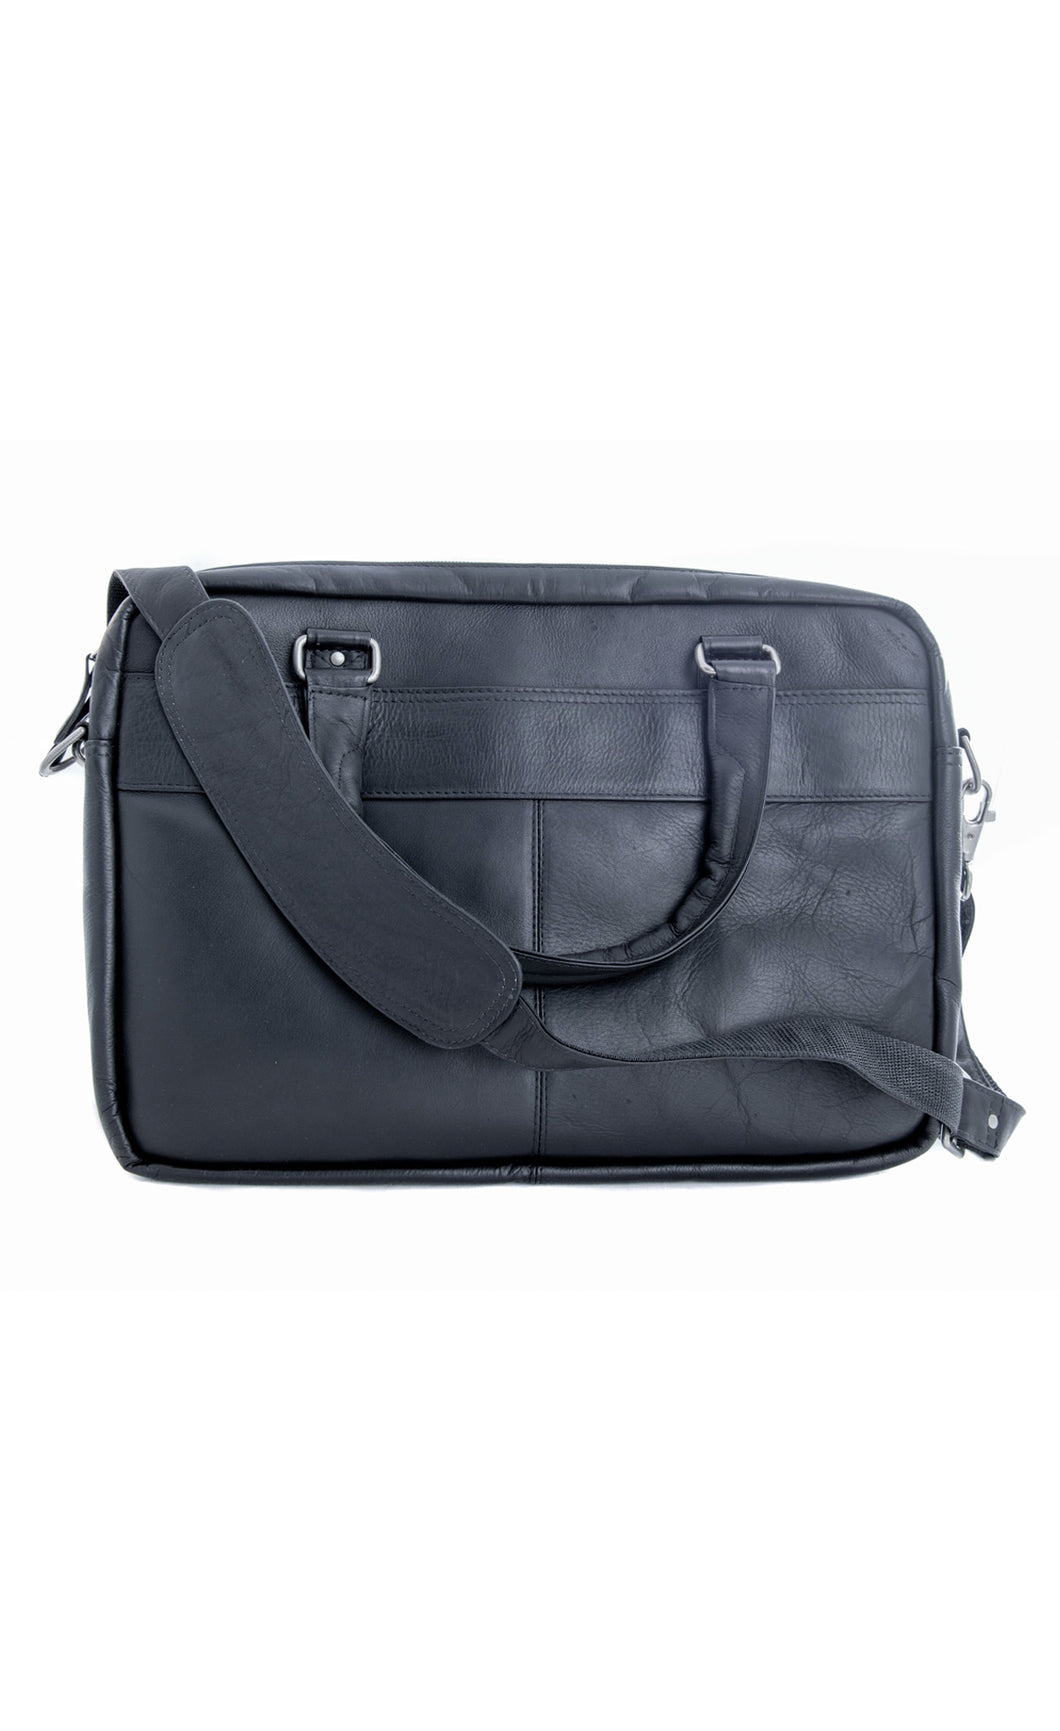 The Wall Street Briefcase Black